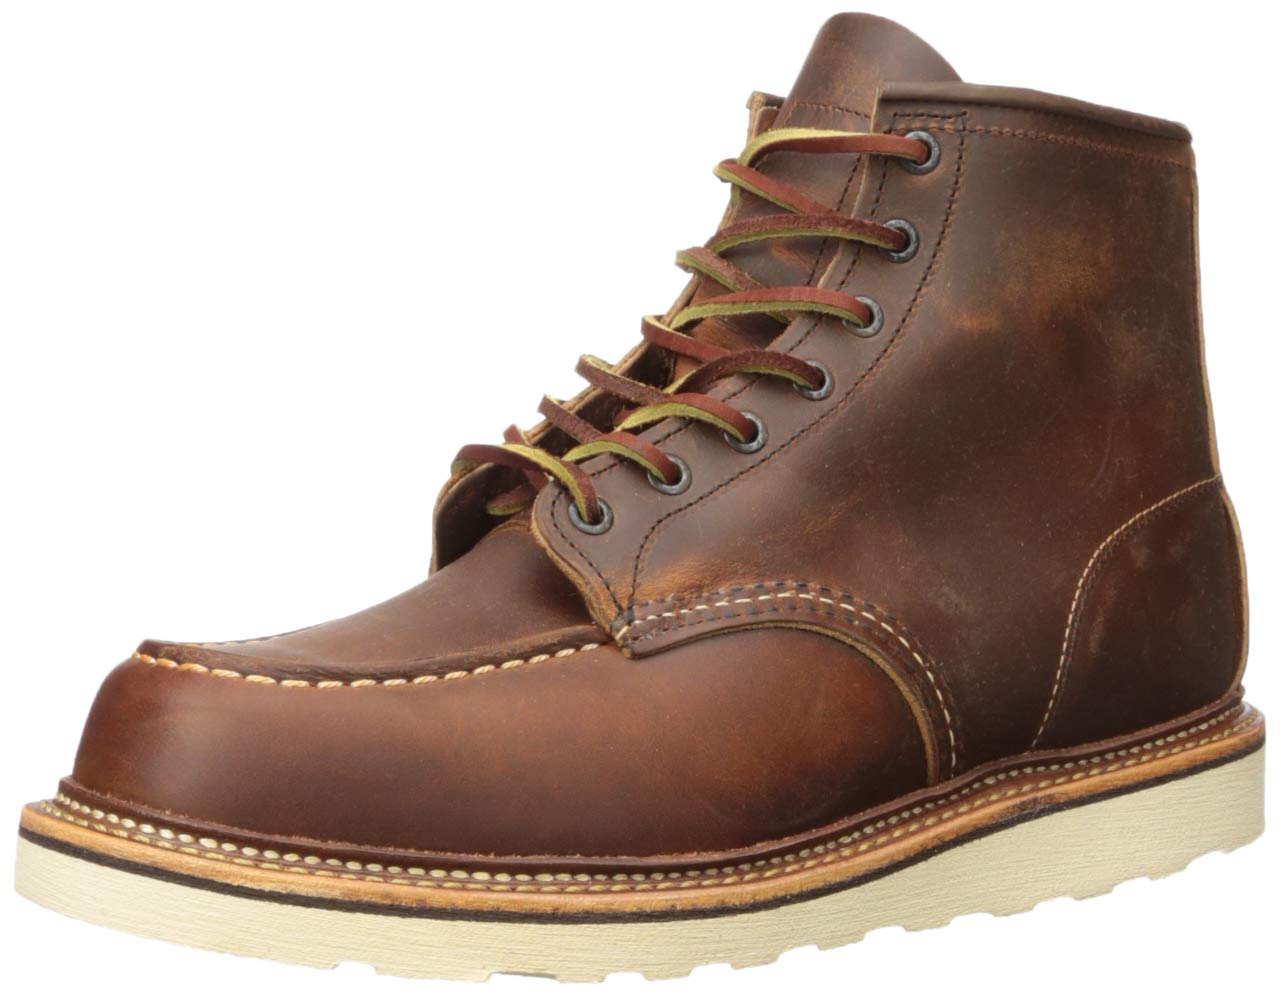 Red Wing Heritage Men's Classic 1907 6-Inch Moc Toe Boot,Copper Rough & Tough,9 D US by Red Wing